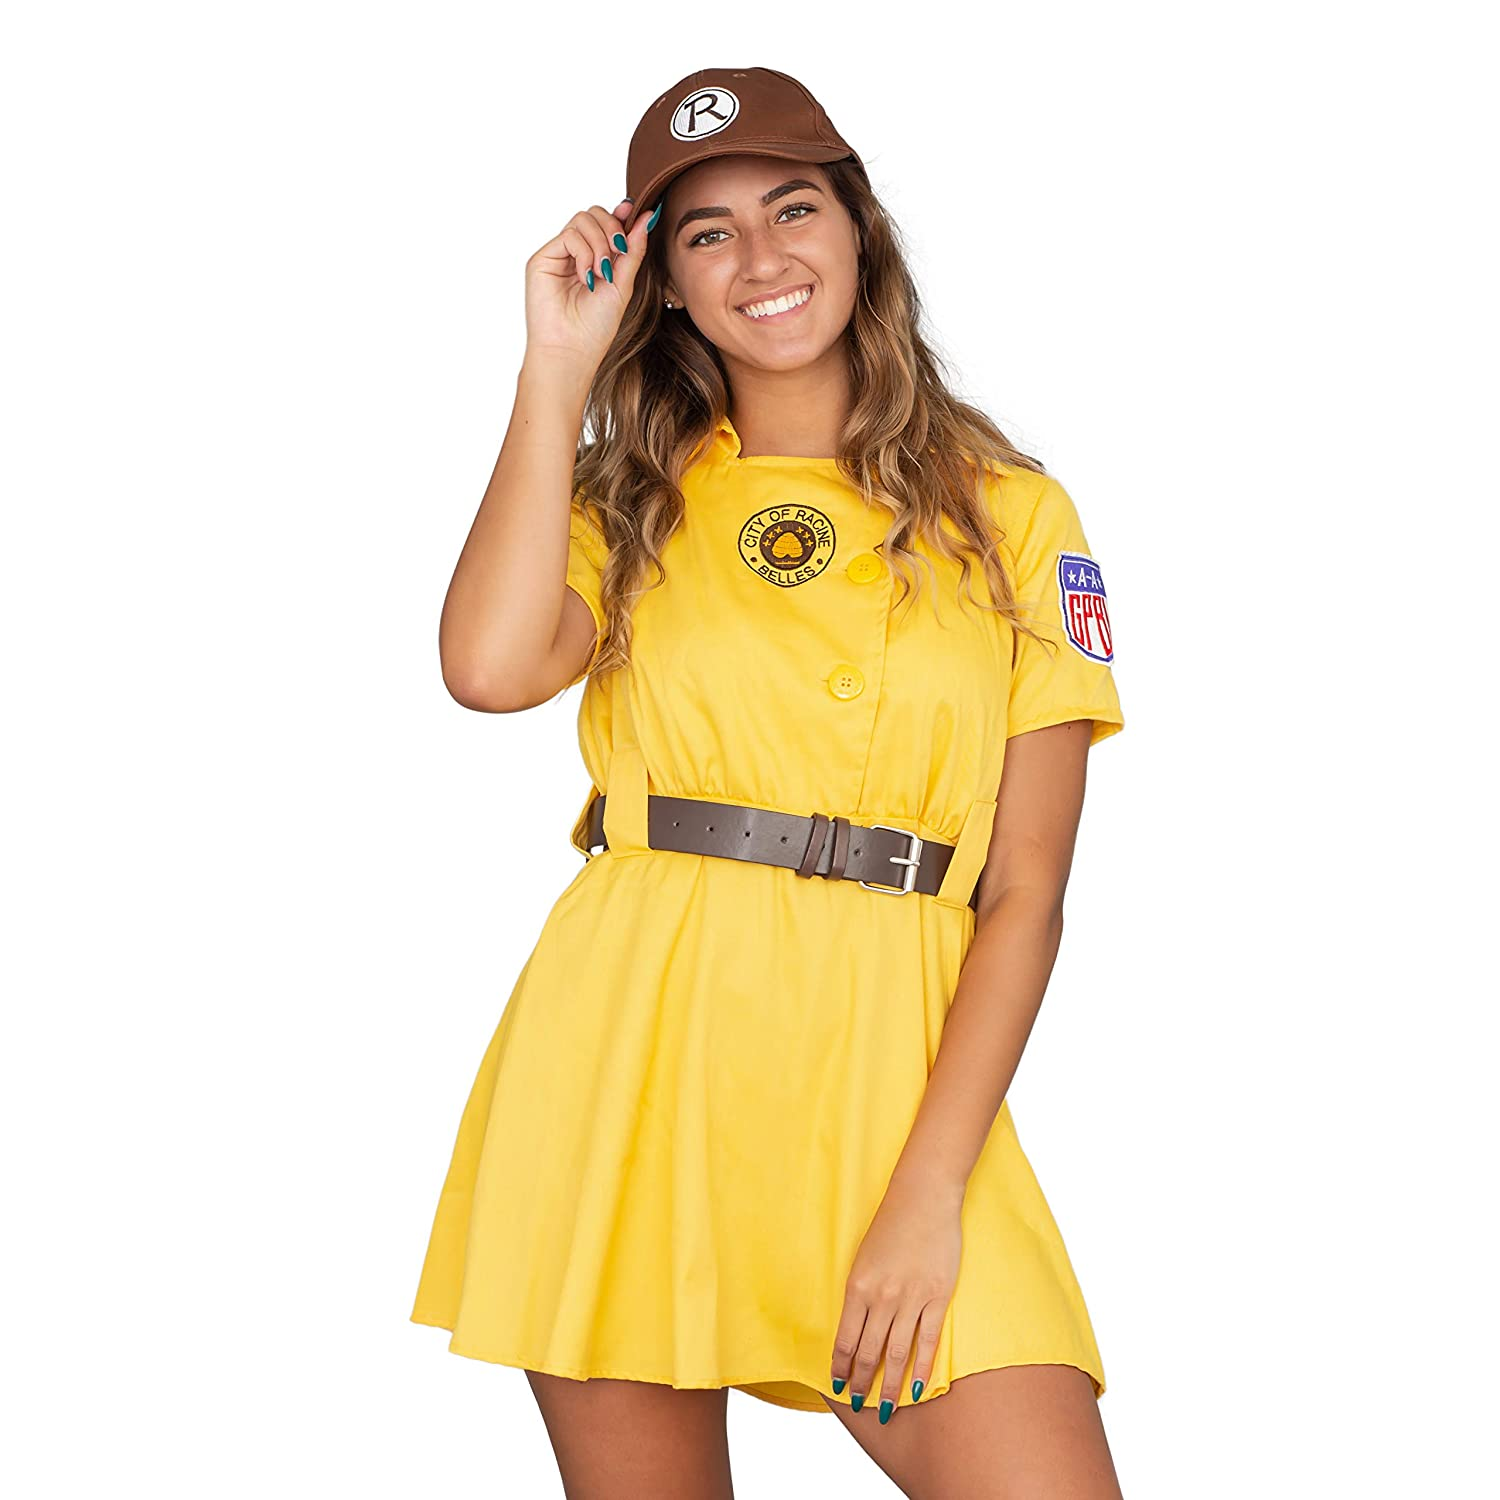 1940s Costumes- WW2, Nurse, Pinup, Rosie the Riveter Racine Belles AAGPBL Baseball Womens Costume Dress $49.99 AT vintagedancer.com